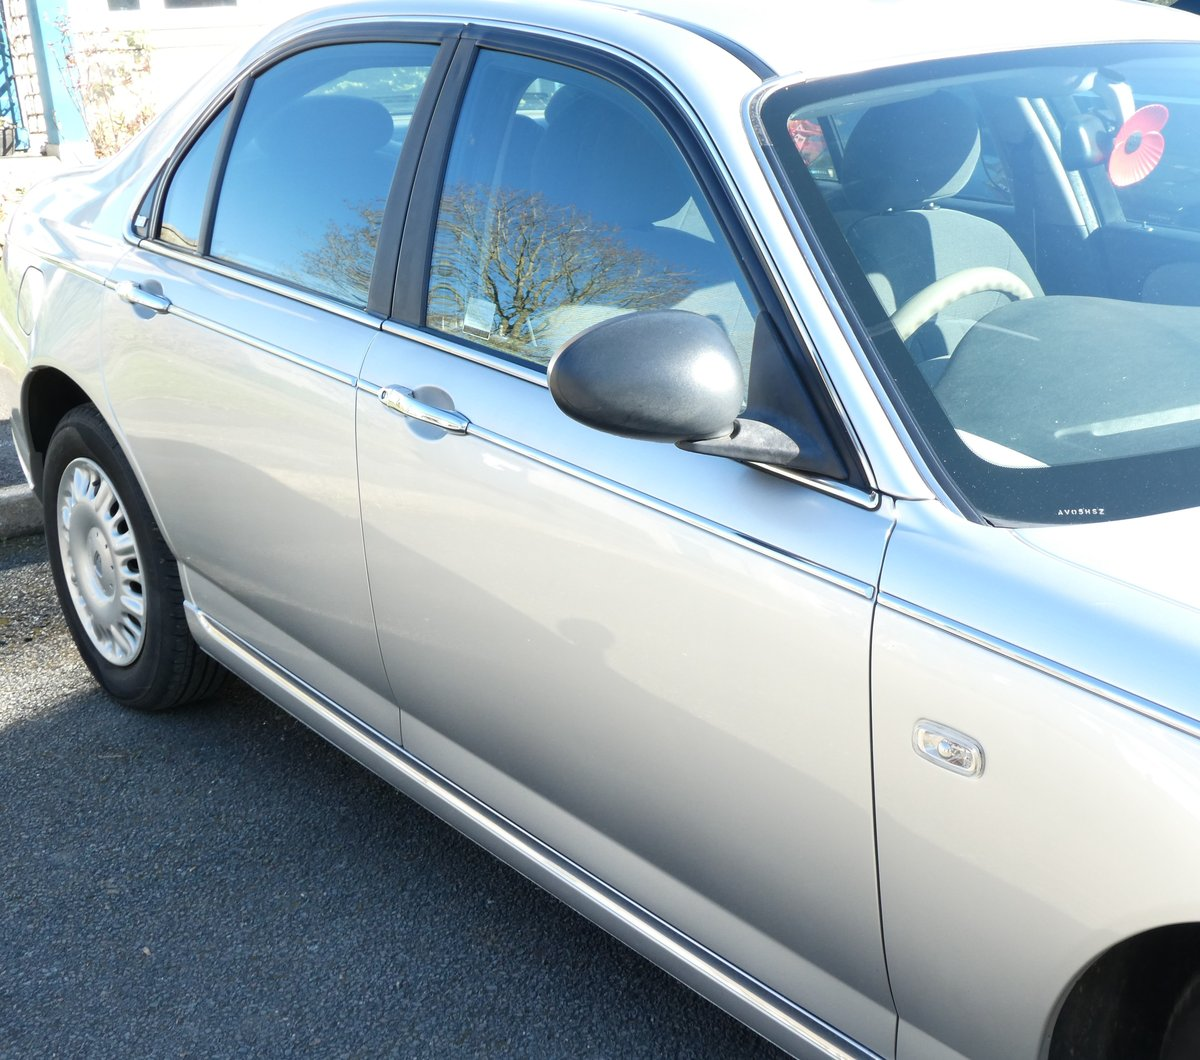 Rover 75 2005 Clasic 1.8 Petrol For Sale (picture 3 of 5)